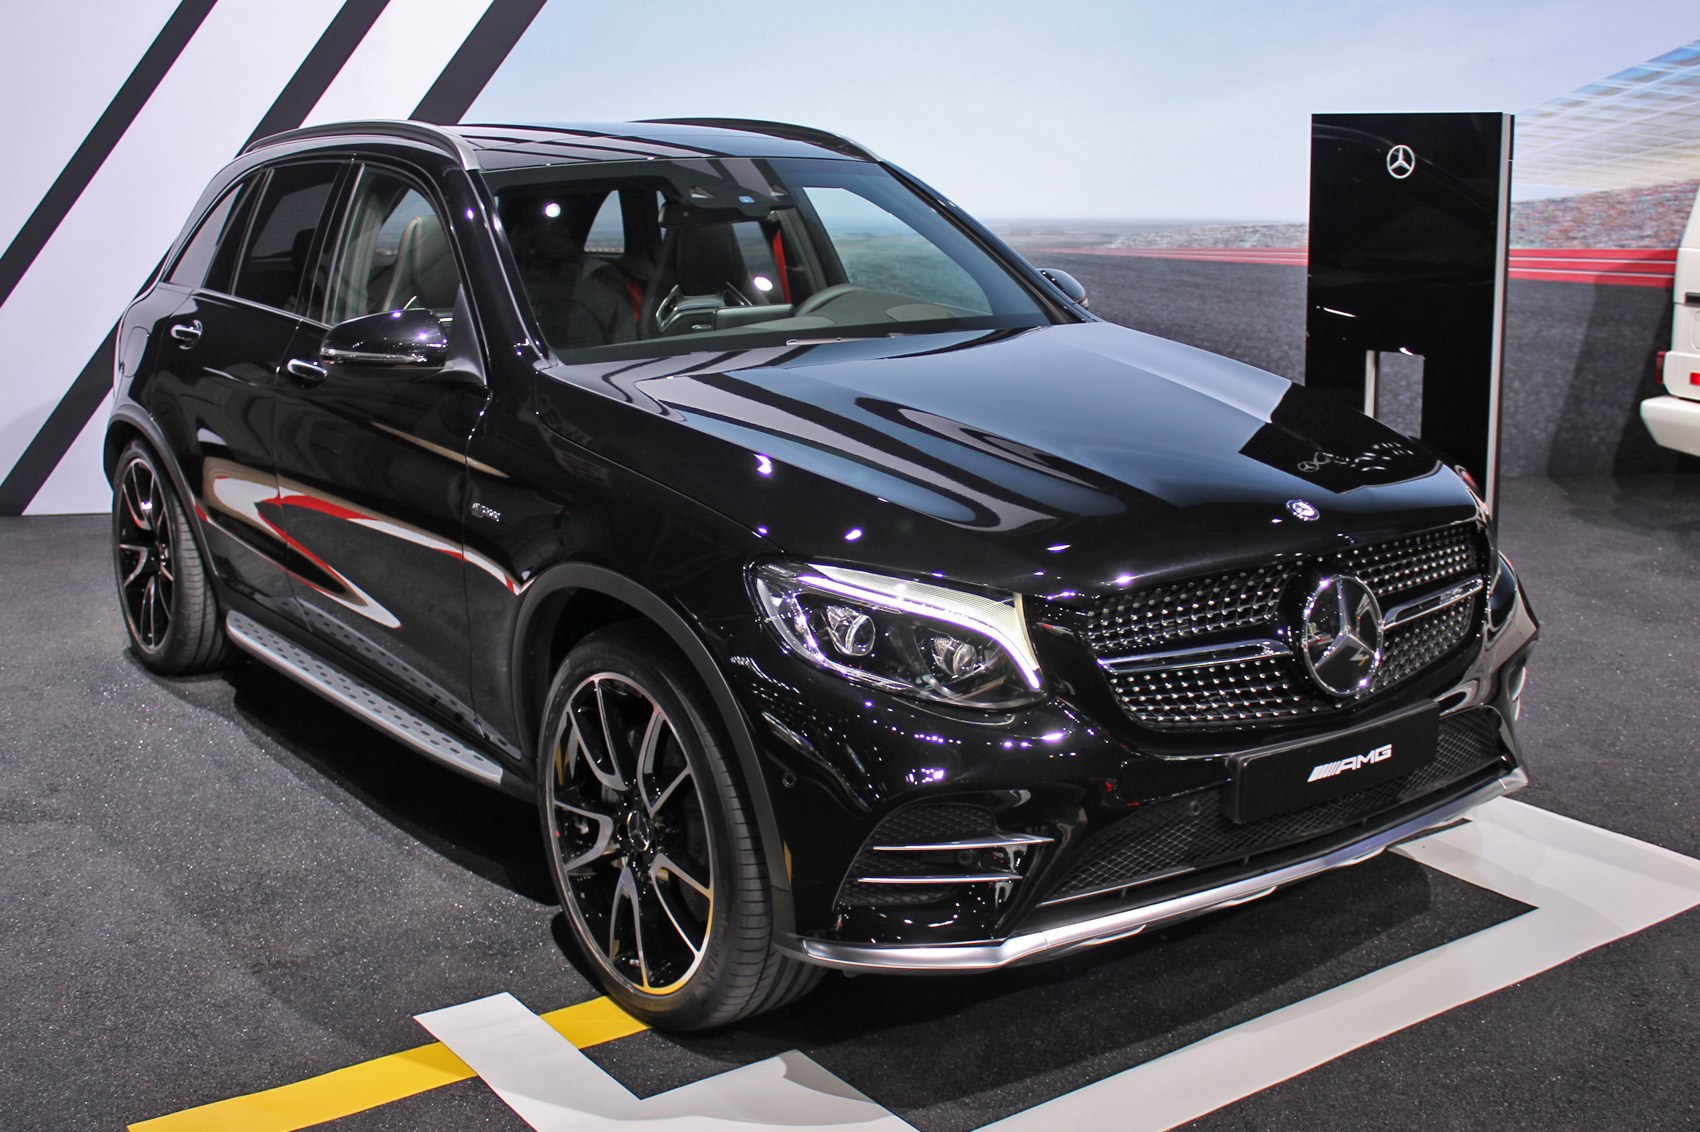 mercedes amg glc 43 4matic is here amg genes for all by. Black Bedroom Furniture Sets. Home Design Ideas